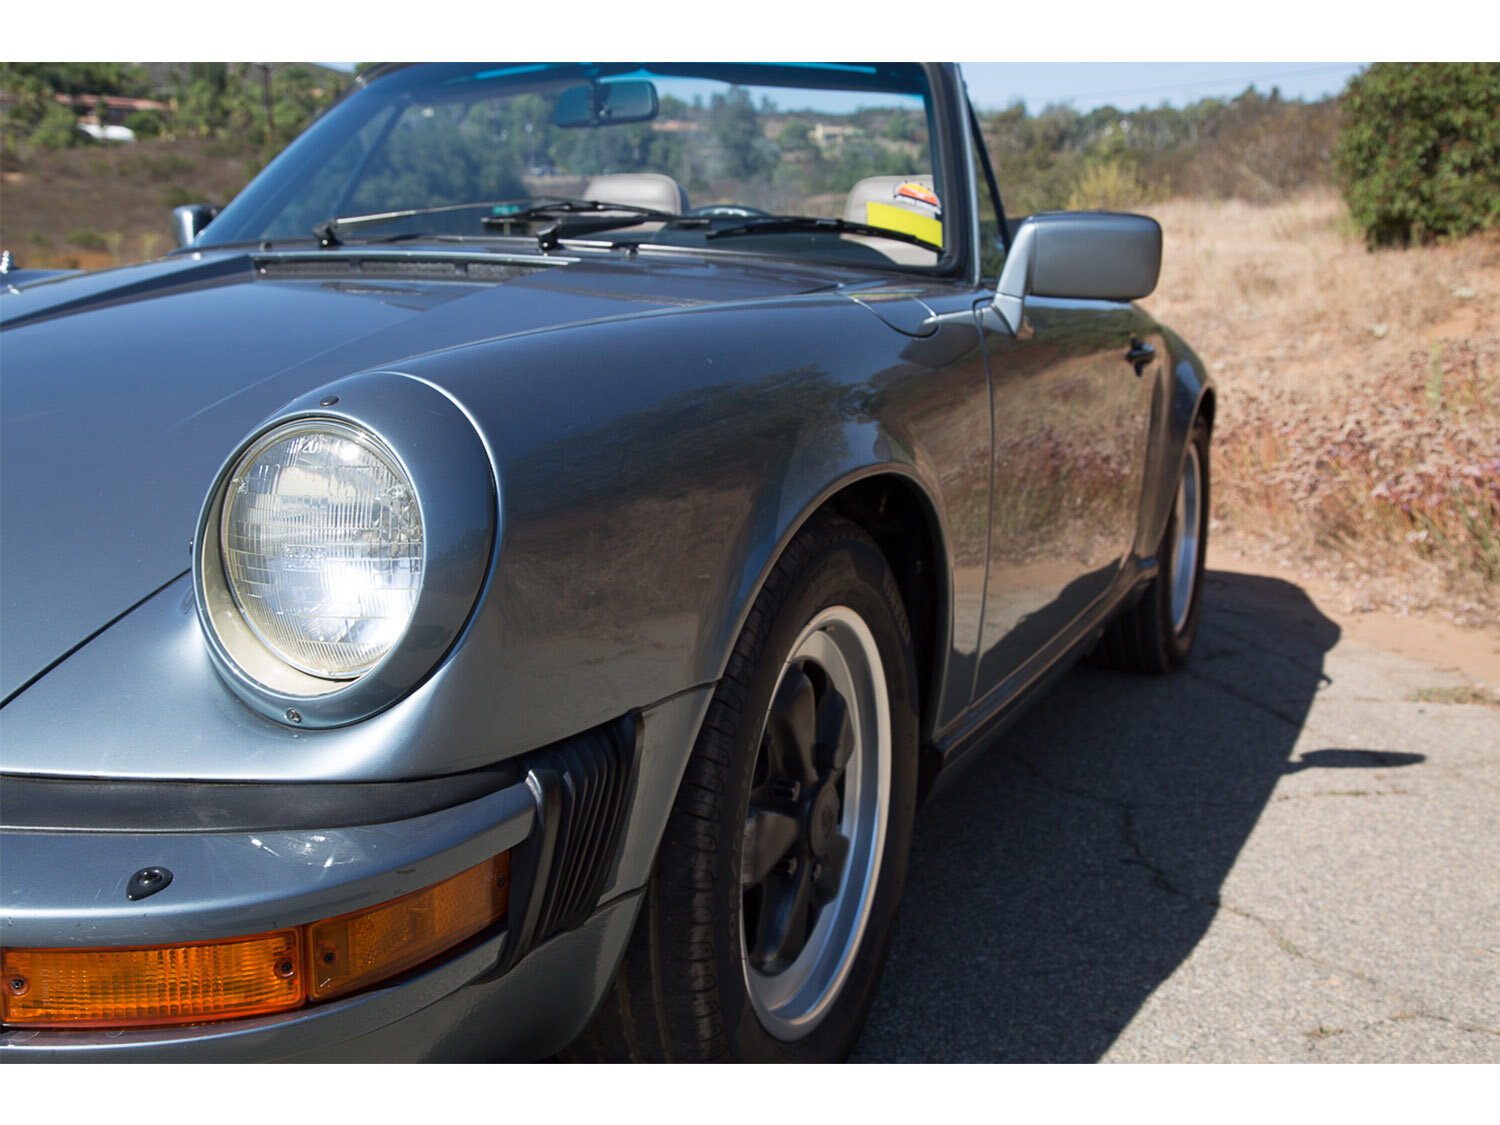 1984-carrera-cabriolet-slate-blue-911-sc-for-sale-makellos-classics_0001s_0000s_0004_1B7A6645.jpg